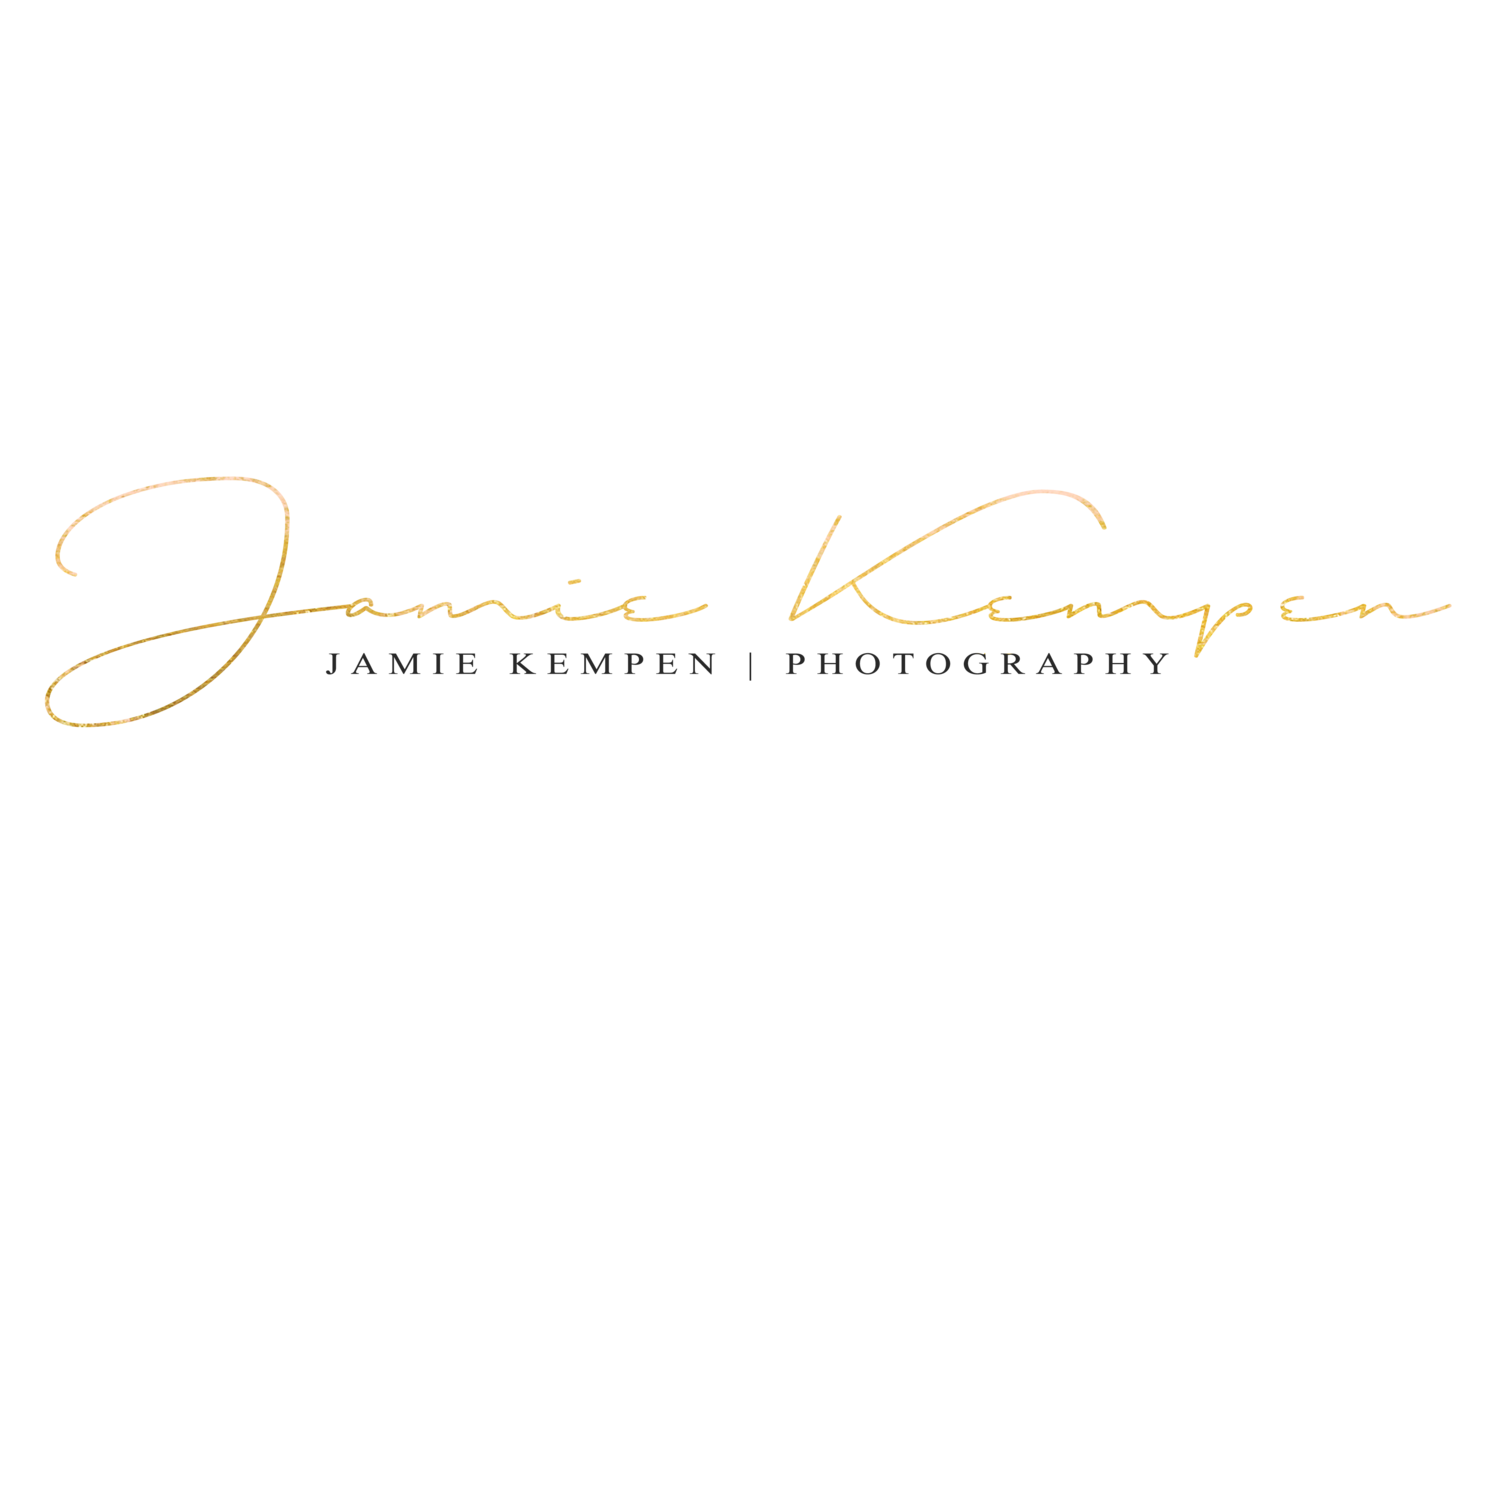 Jamie Kempen Photography